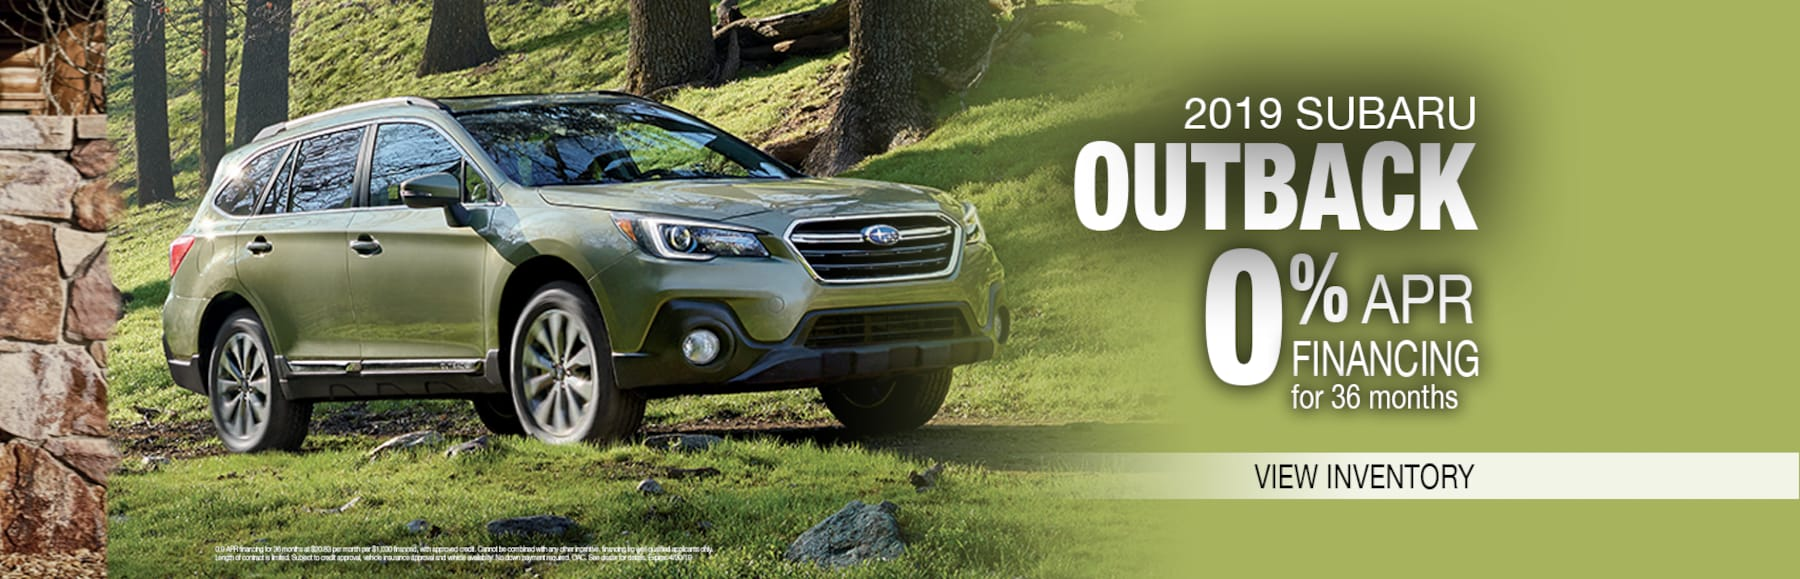 Subaru Dealer in Sioux Falls, SD | Schulte Subaru